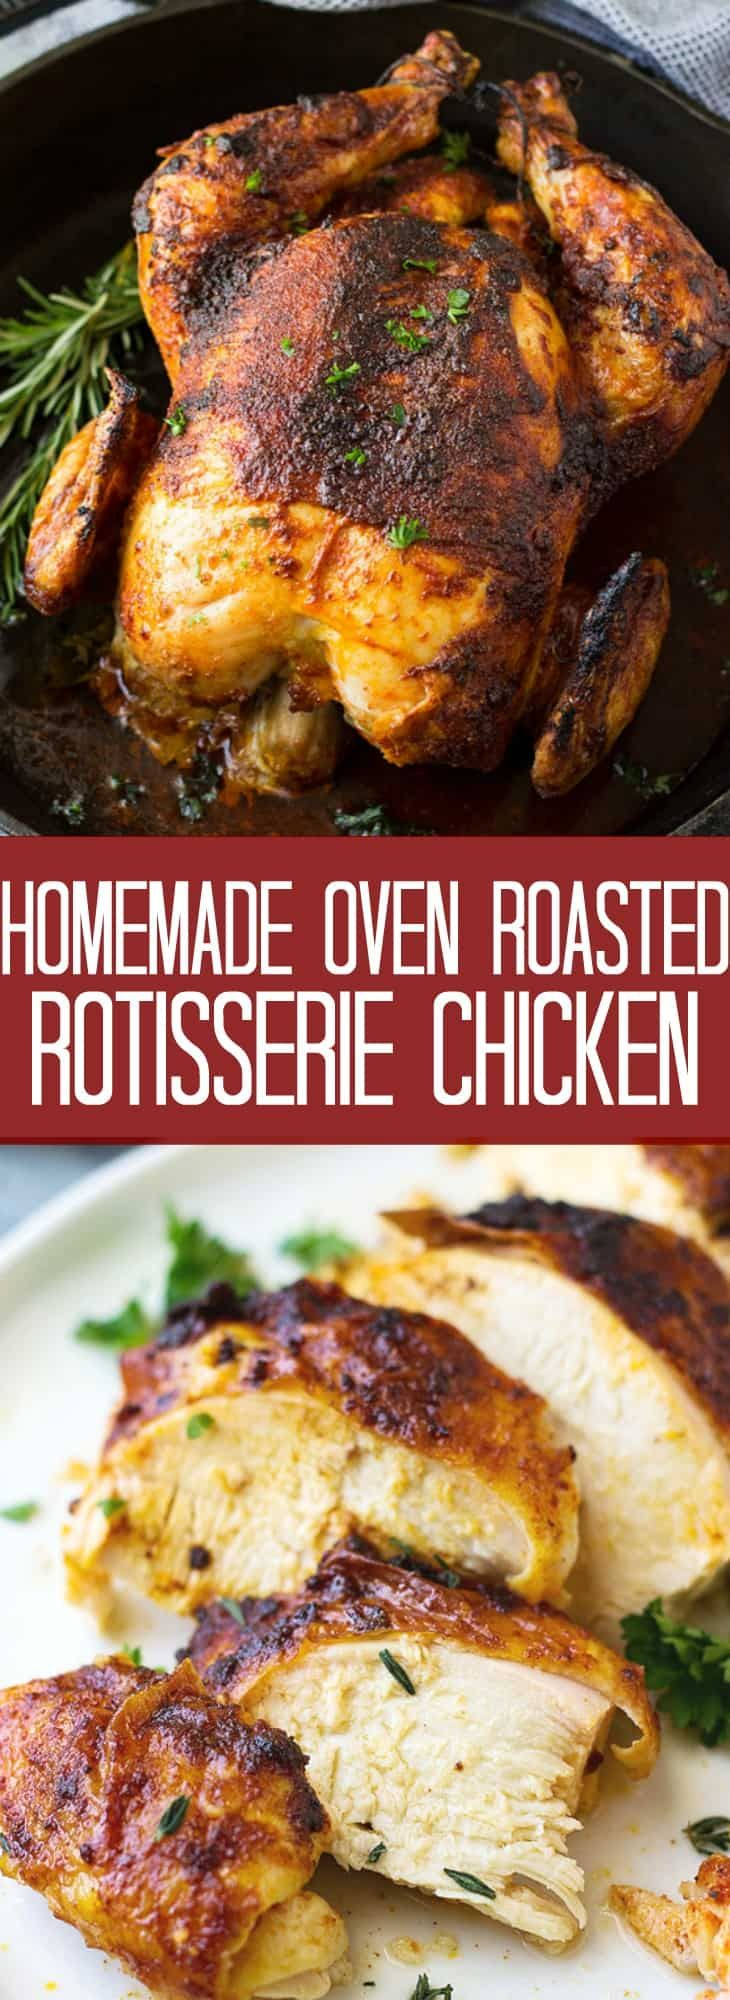 Homemade Oven Roasted Rotisserie Chicken | Countryside Cravings #chickenbreastrecipeseasy